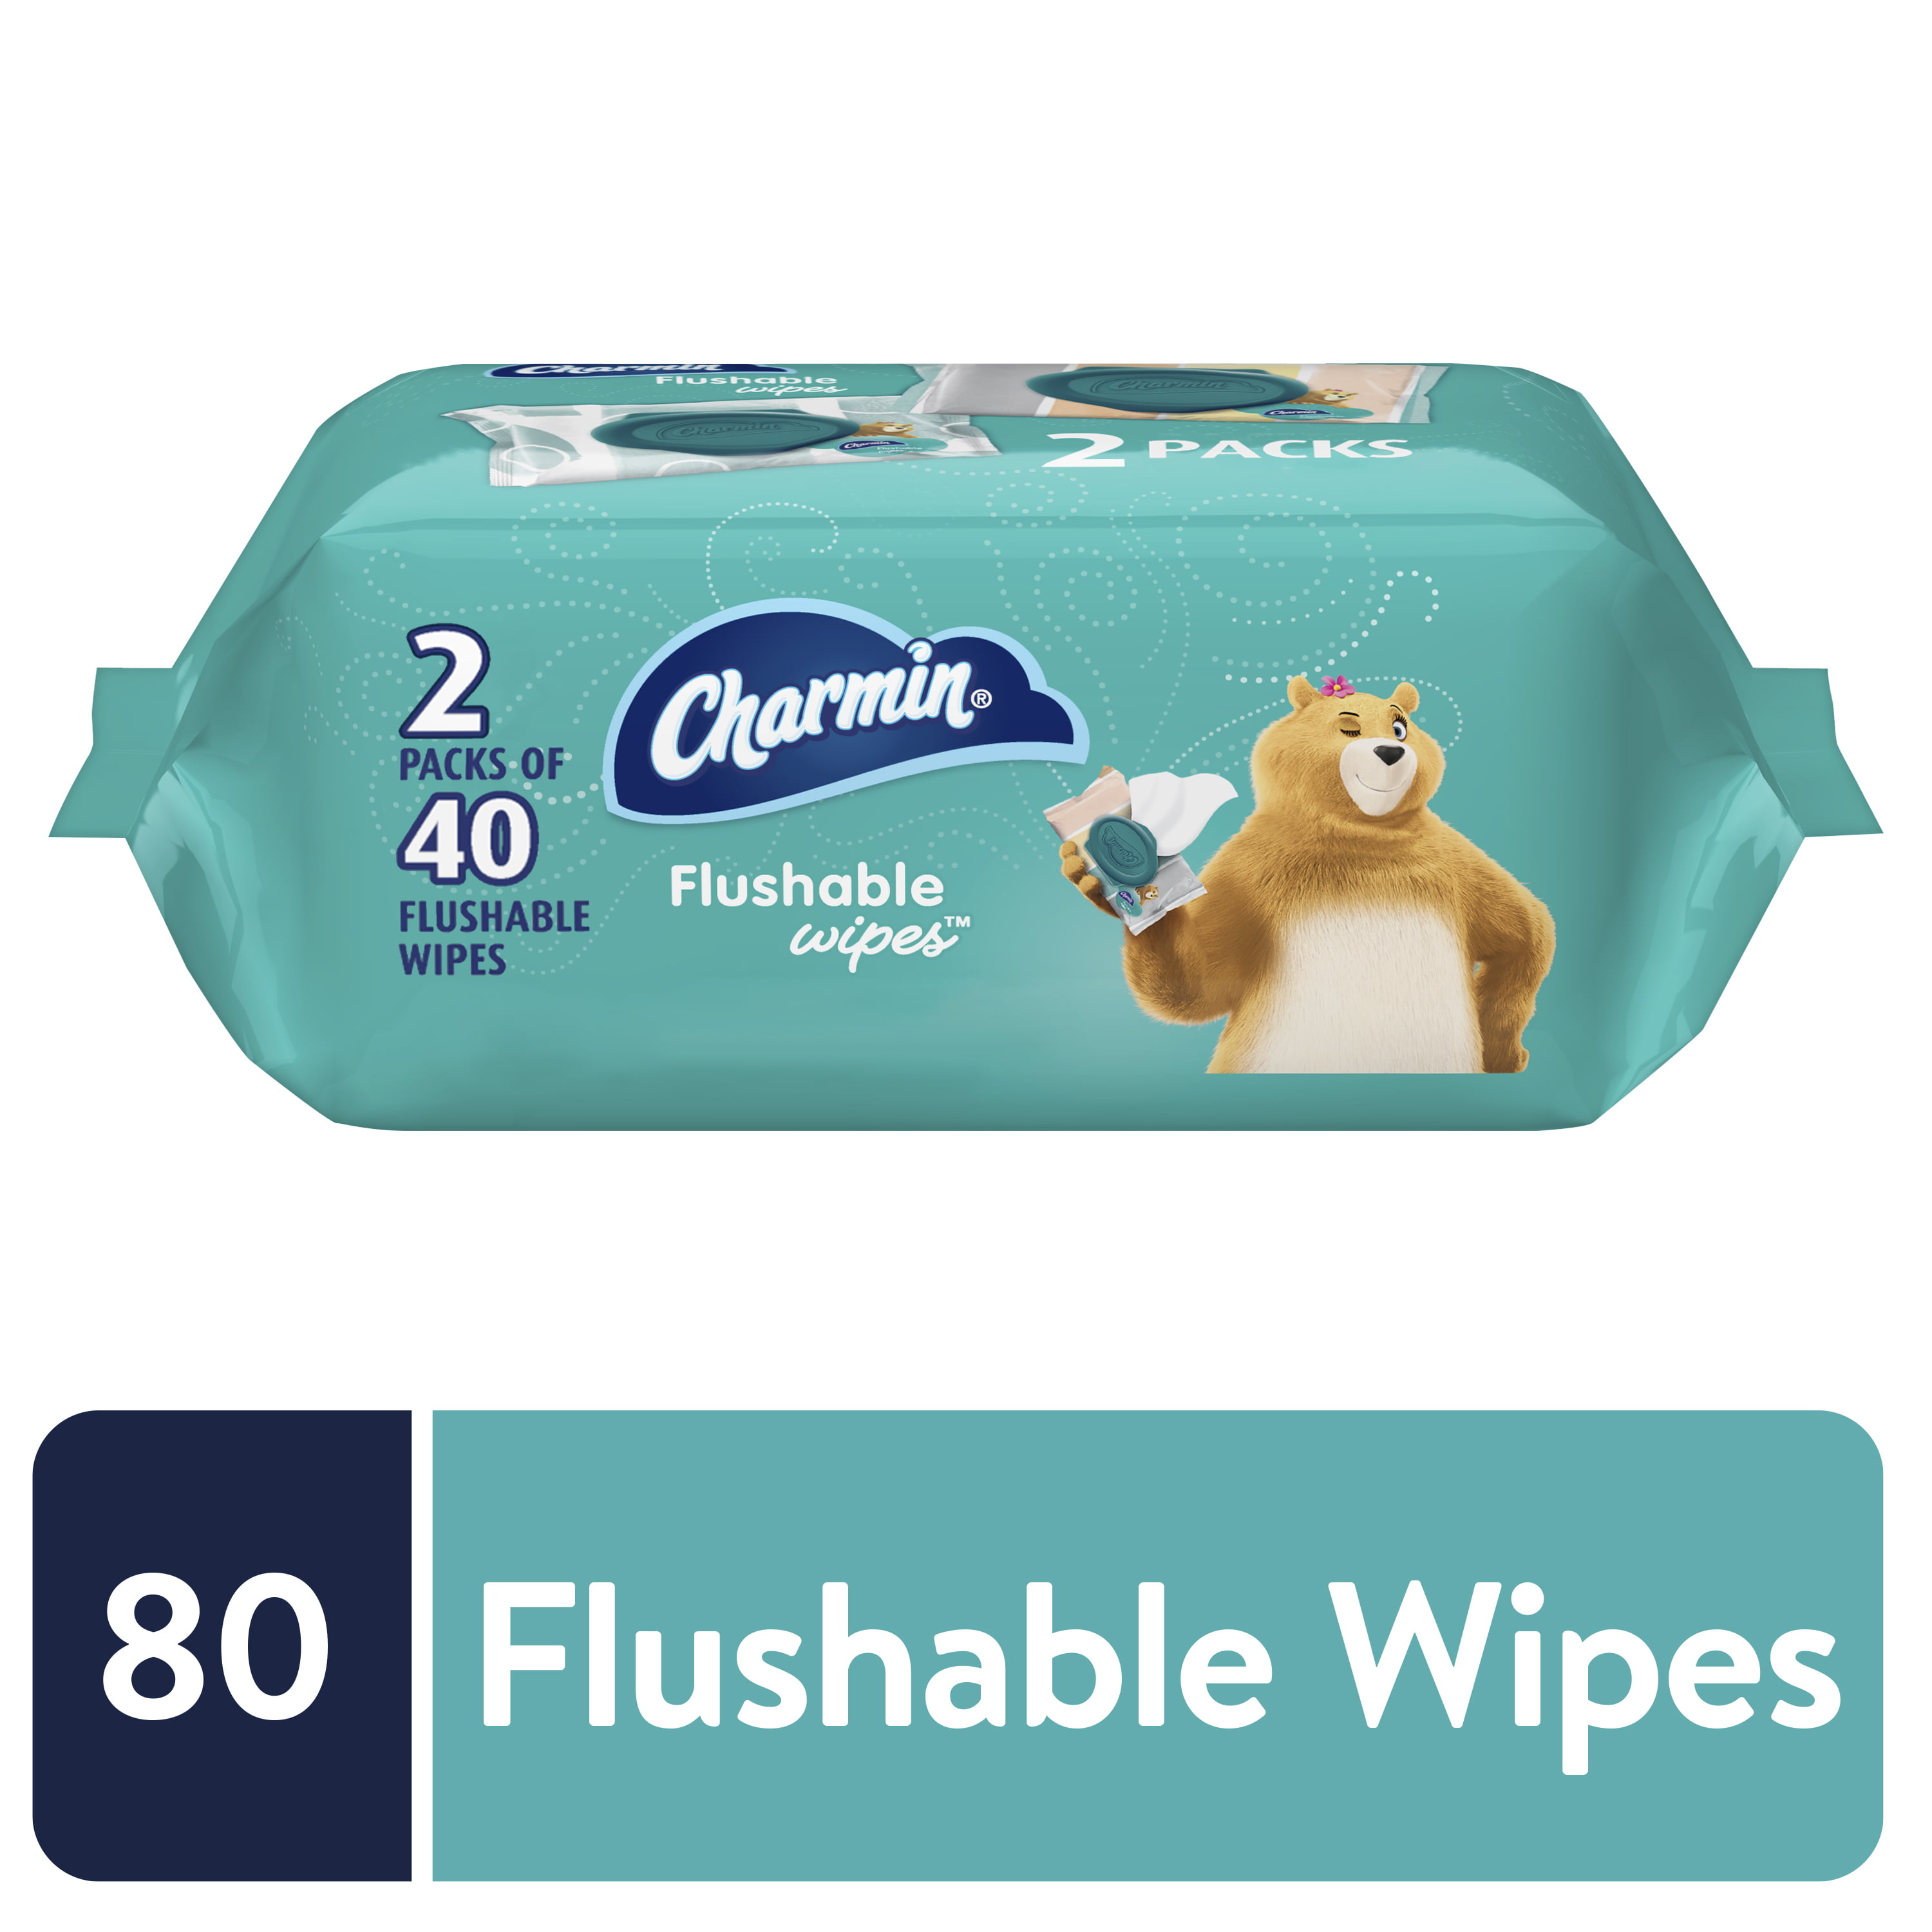 Charmin Flushable Wipes, 2 packs, 40 Wipes Per Pack, 80 Total Wipes